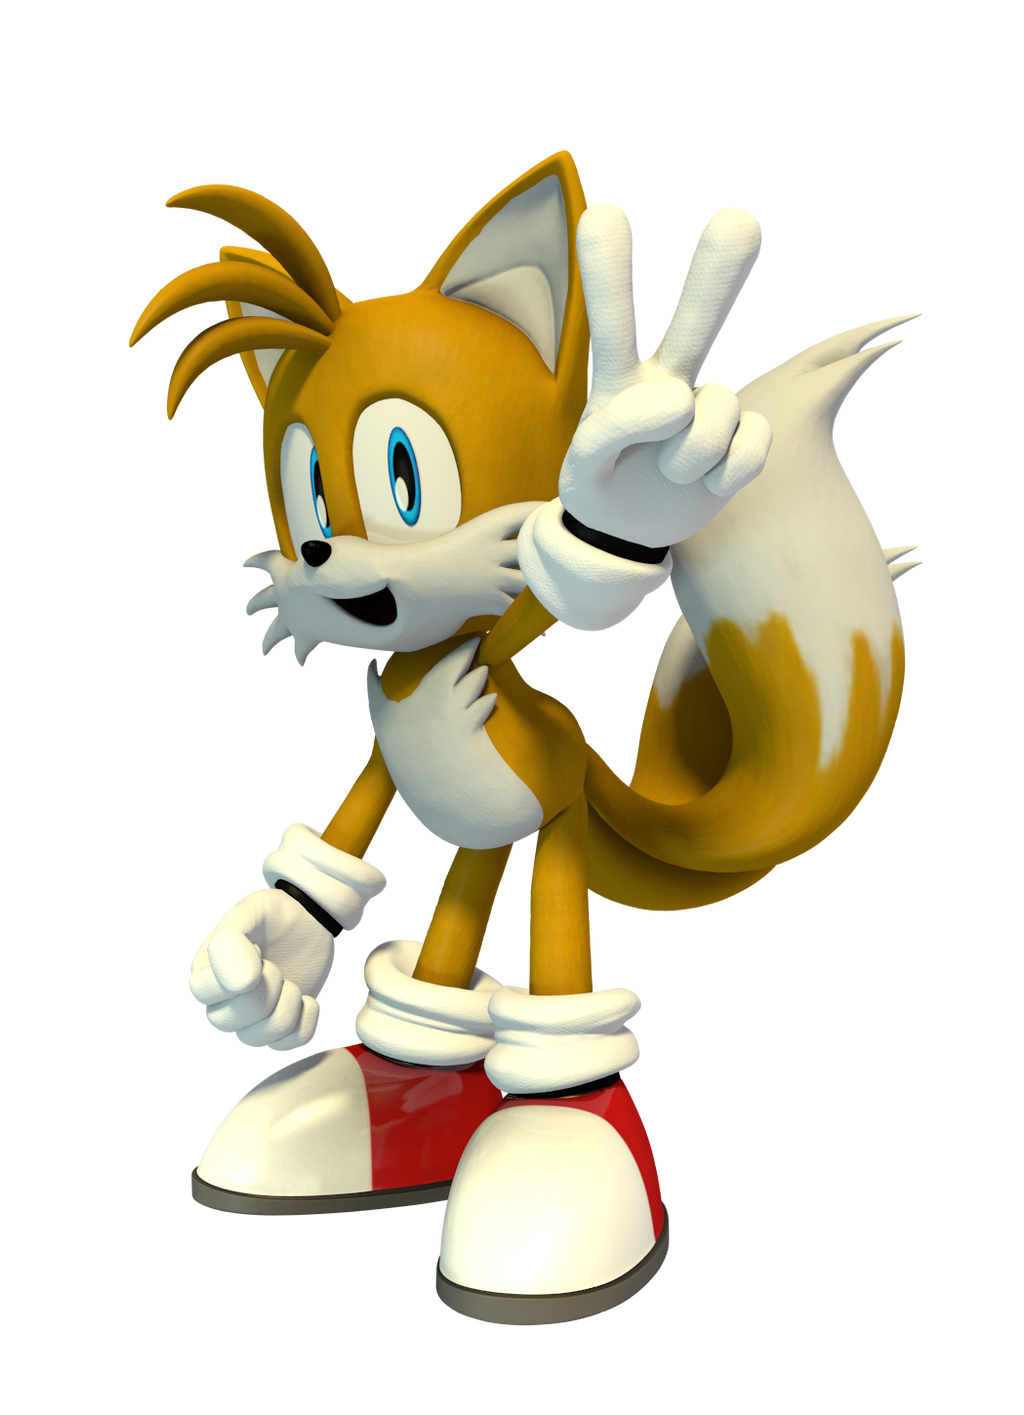 It's Tails, Dontcha Know? by DoodleyStudios